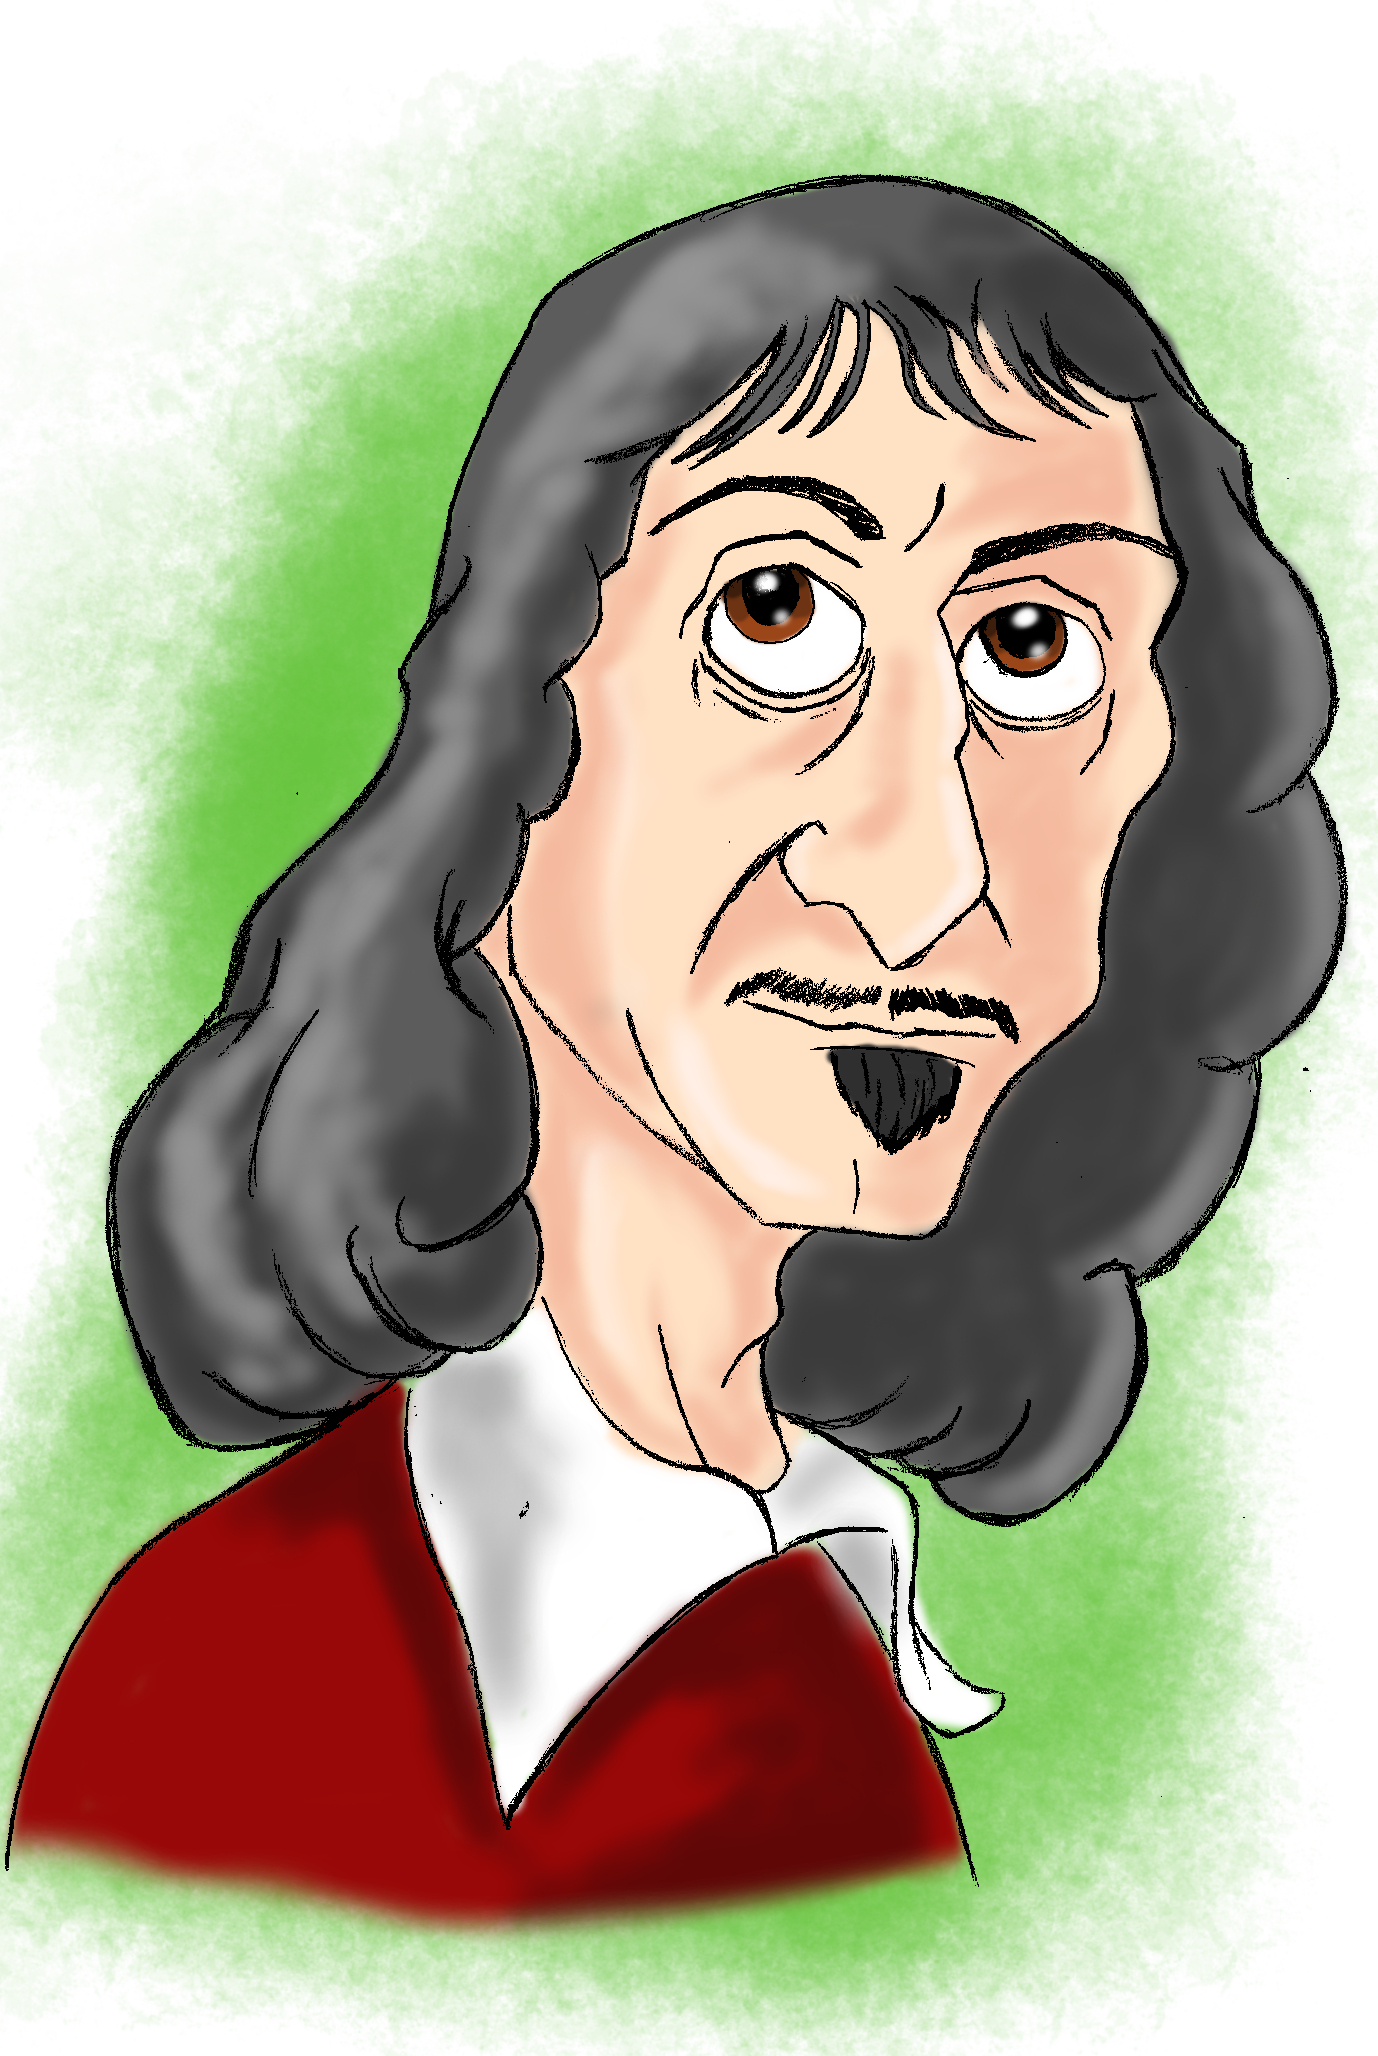 an evaluation of descates argument on the source of knowledge Ren descartes (1596 1650) ren descartes thought that the scholastics' method was prone to doubt given their reliance on sensation as the source for all knowledge notice that in this argument descartes makes a direct inference from having the idea of an infinite substance to the.